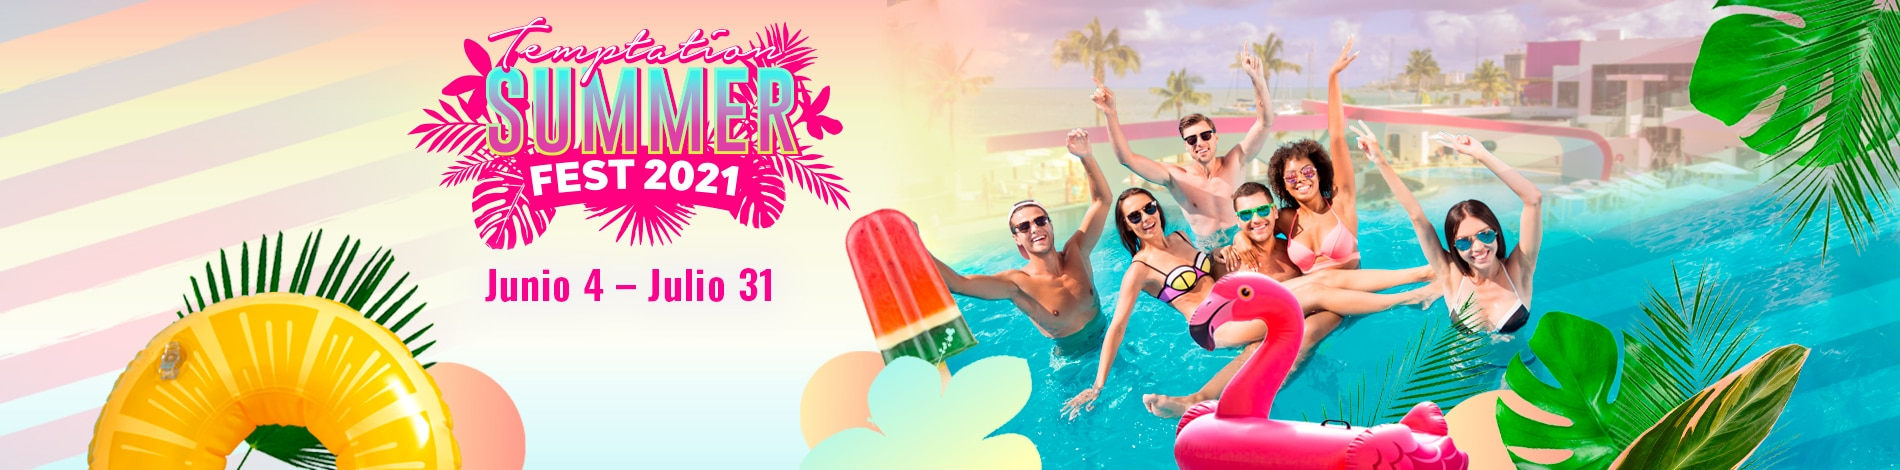 Temptation Cancun Resort - Summer Fest 2021